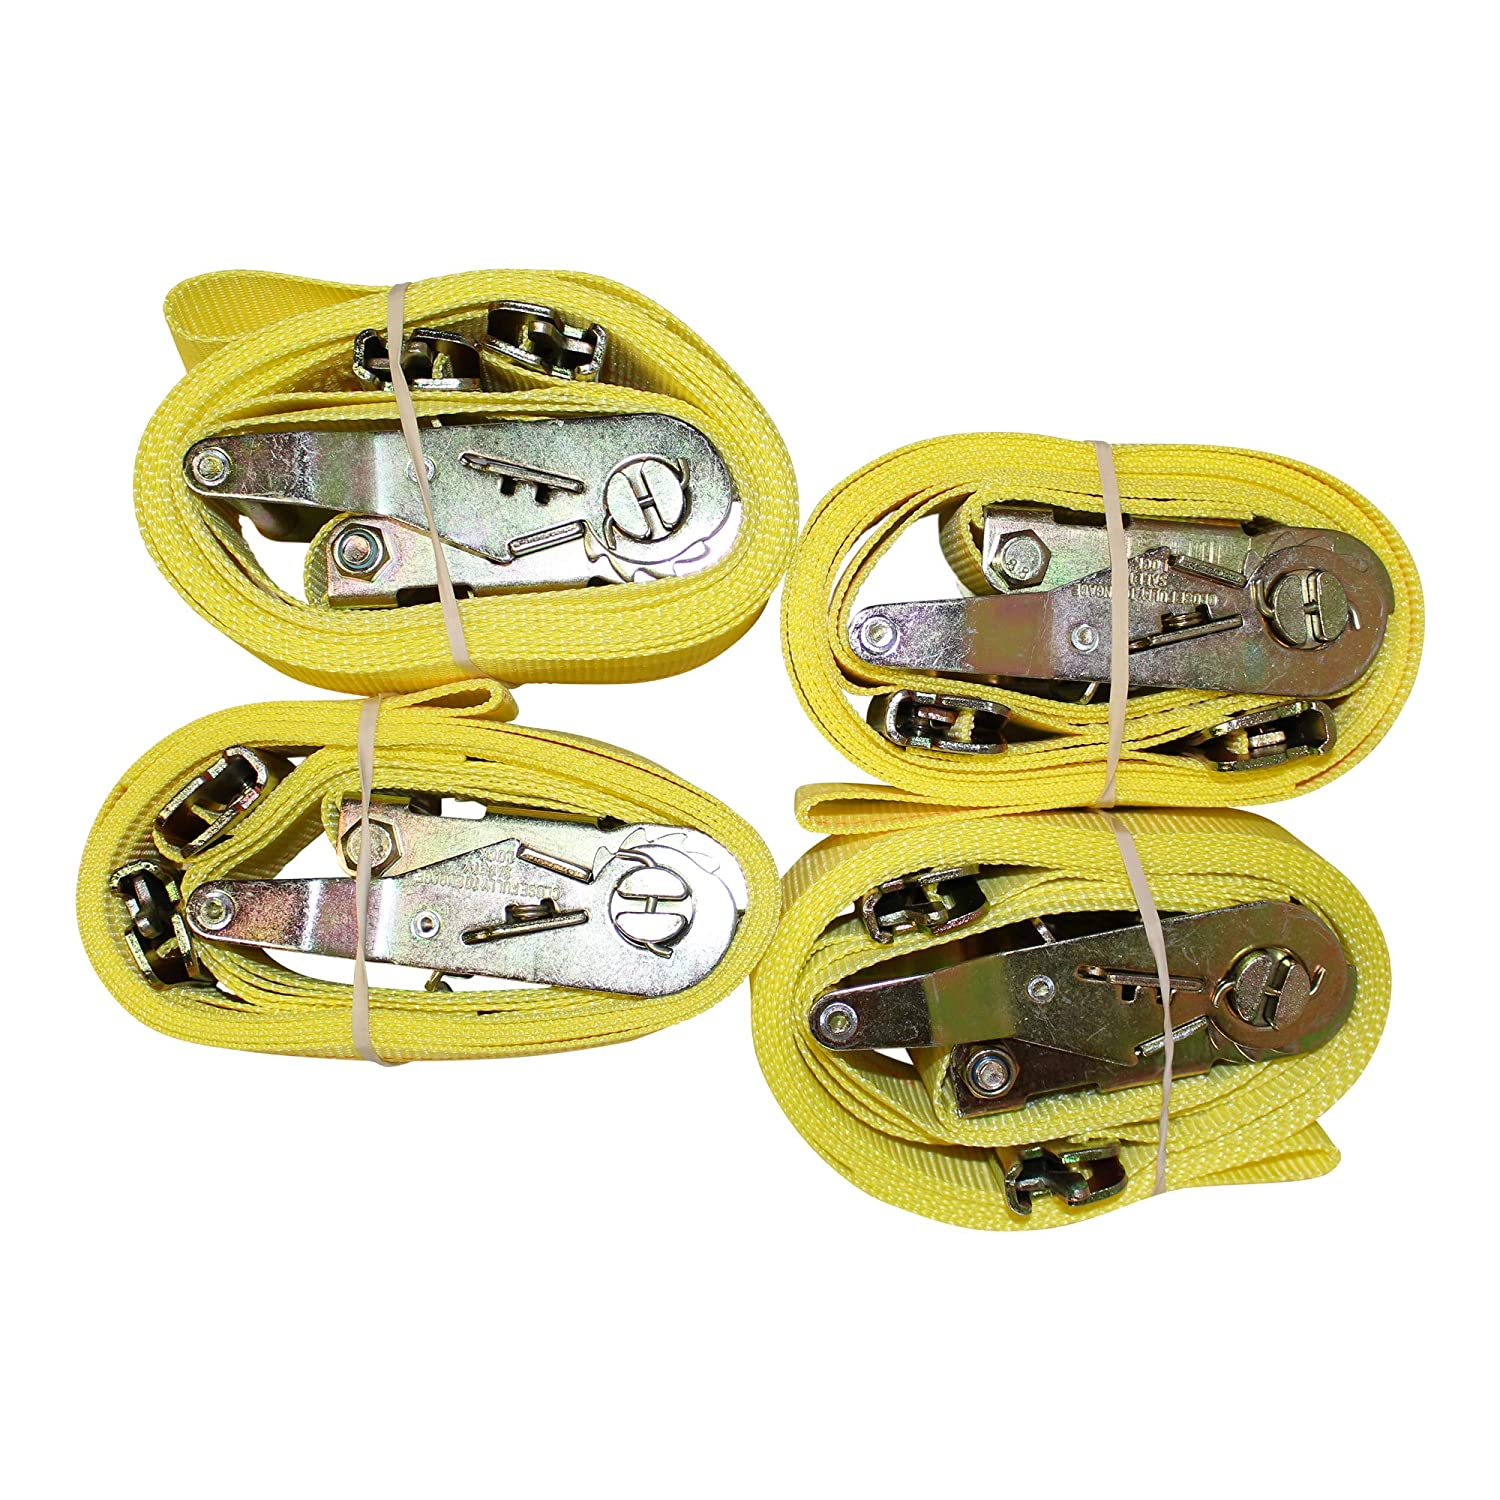 Flatbed E-Track Cargo Strap E Track Heavy Duty Adjustable Ratchet Straps 2 in x 12 ft Strap with Rachet - 2 Pack - Yellow ETrack Lashing Tie Down for Loading Truck Bed Roof Rack SGT KNOTS